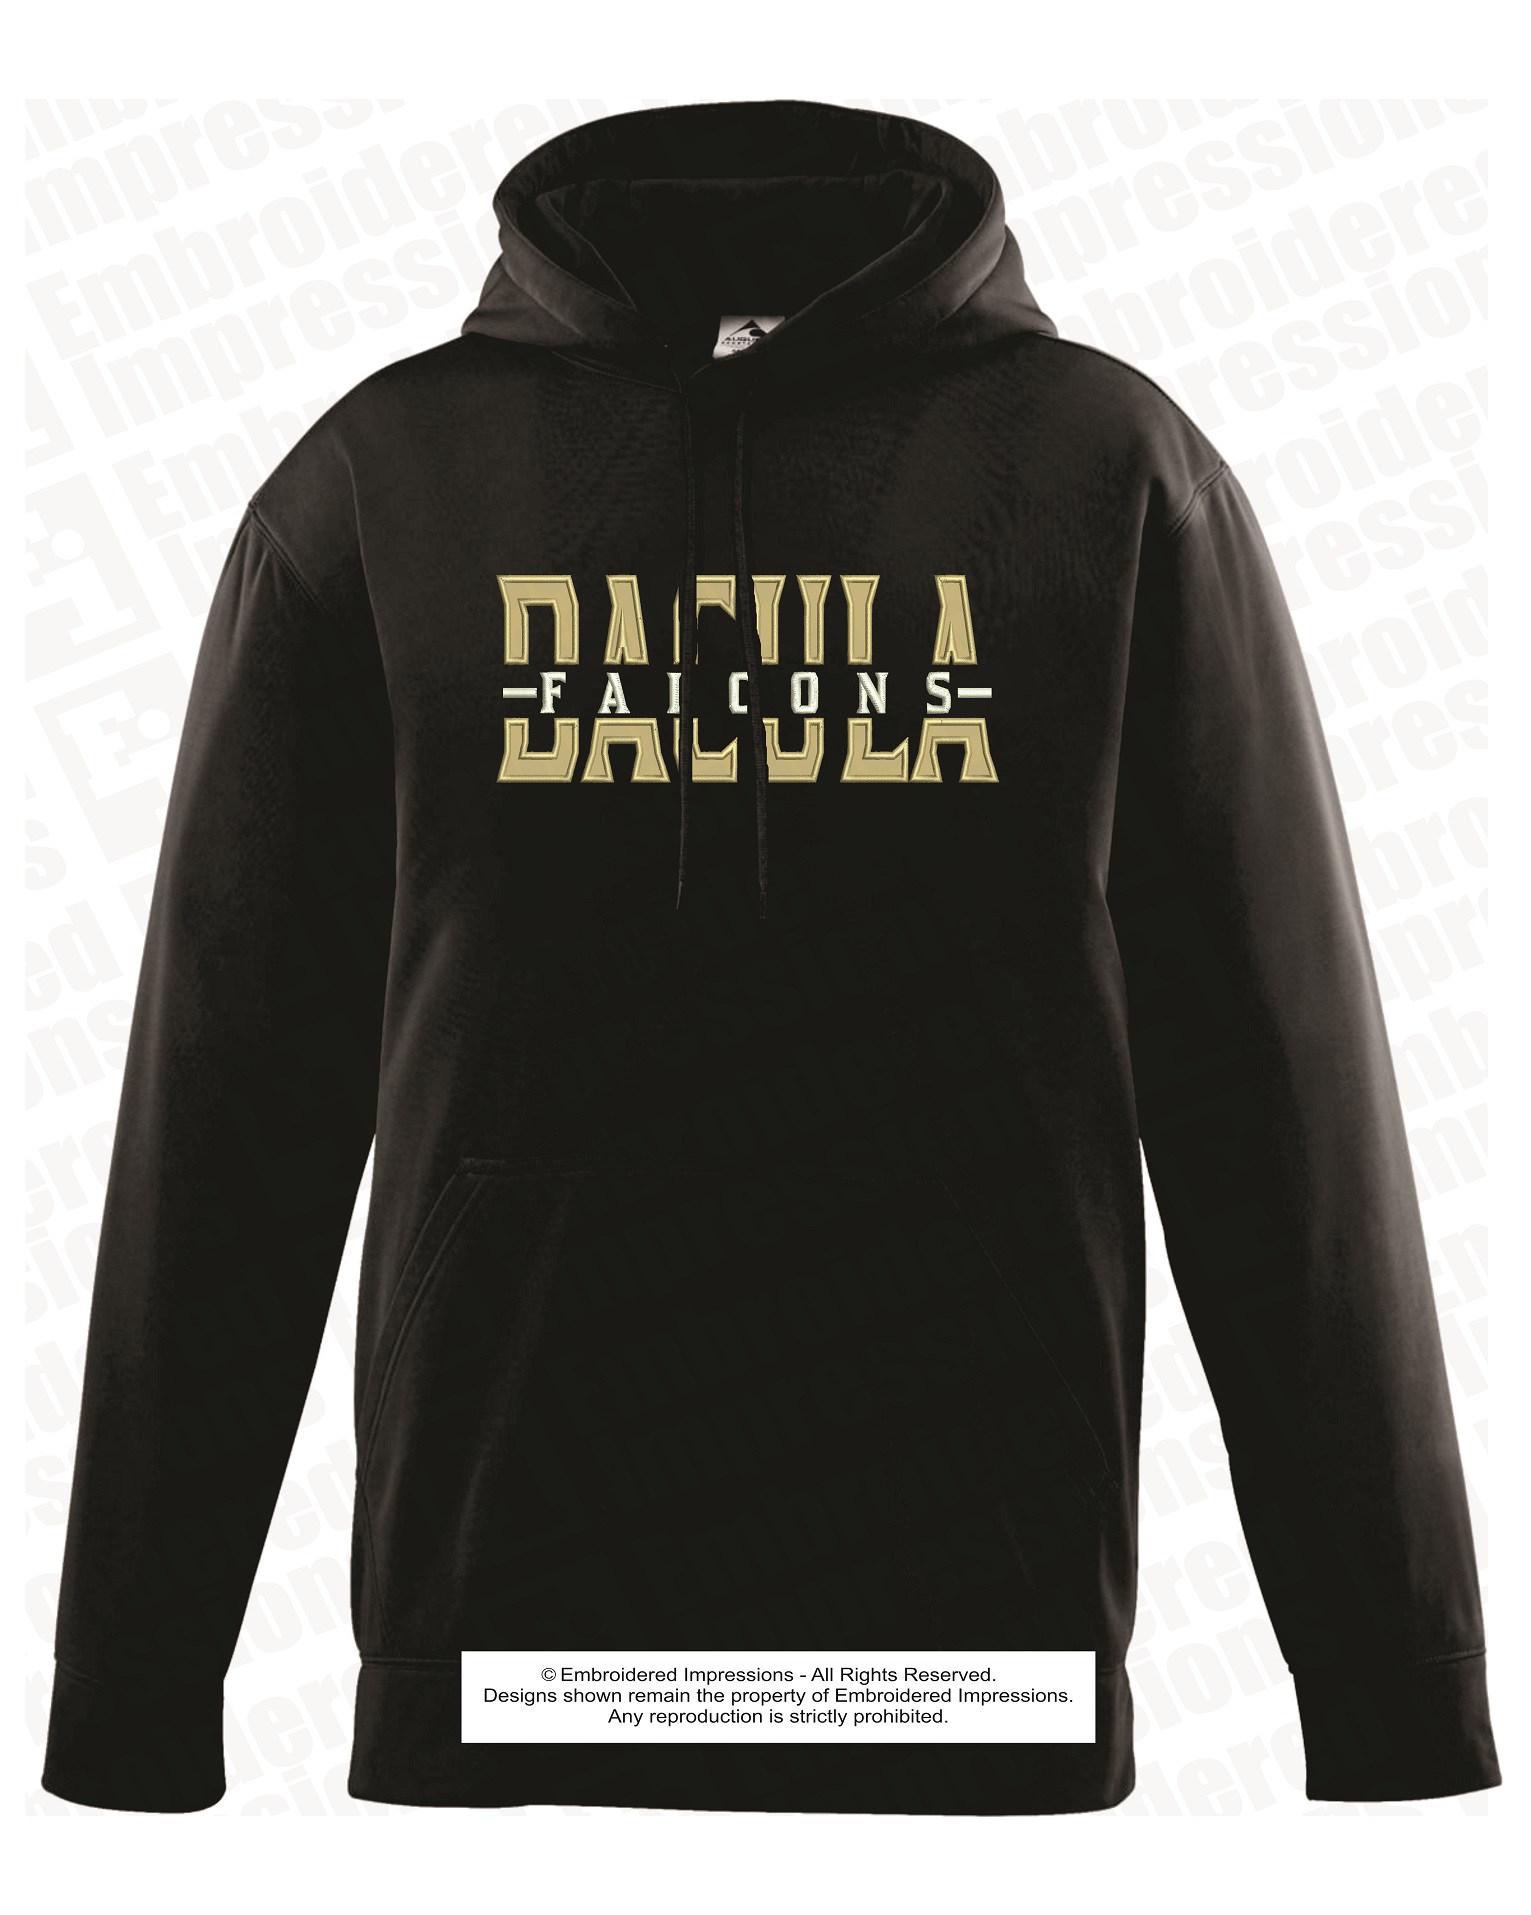 Dacula Falcons Sweatshirt